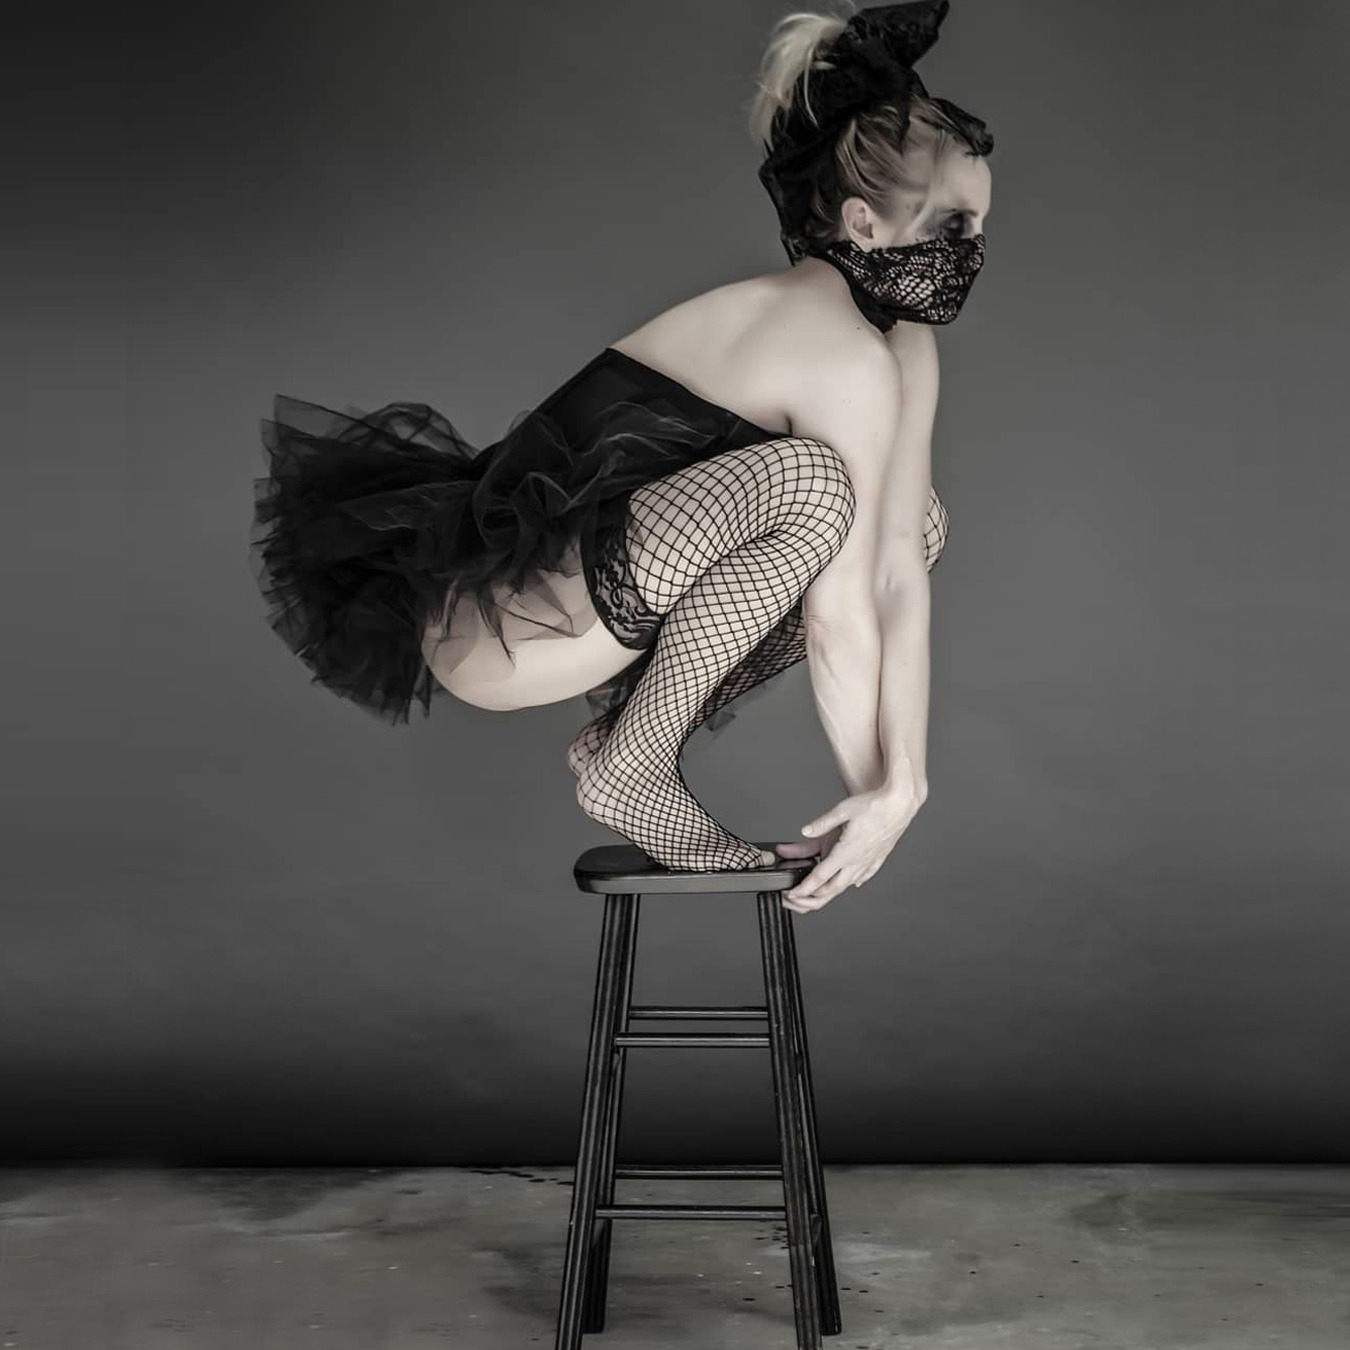 Ballerina standing on a frog position on top of a high chair, wearing a black tutu skirt with black corsage; covering her mouth with a screened scarf